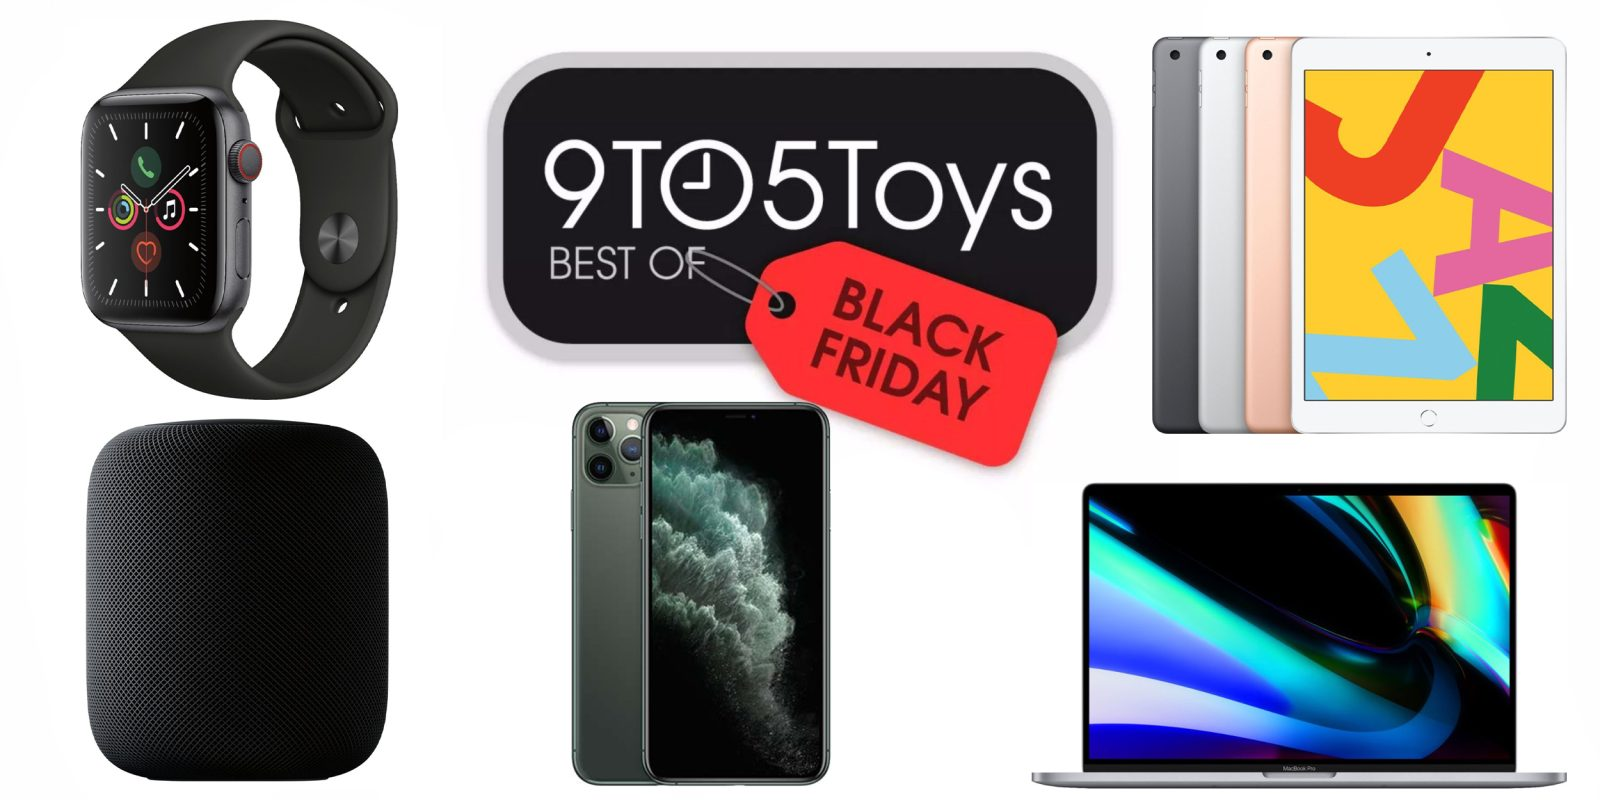 Best of Black Friday 2019 – Apple: 10.2-inch iPad $249, Apple Watch Series 3 $129, more